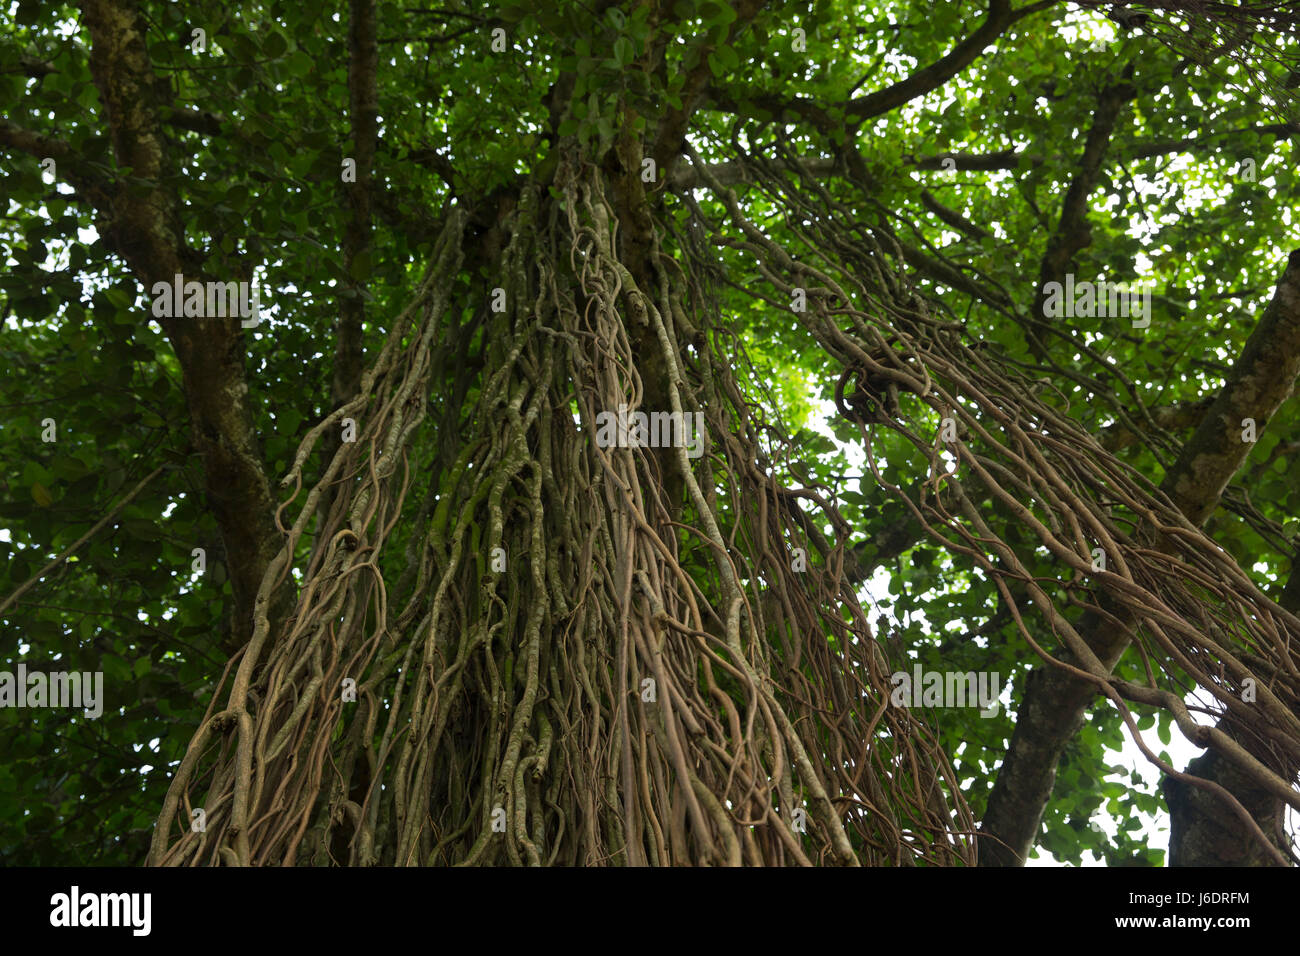 Trunks of a banyan tree at Belabo. Narsingdi, Bangladesh. - Stock Image